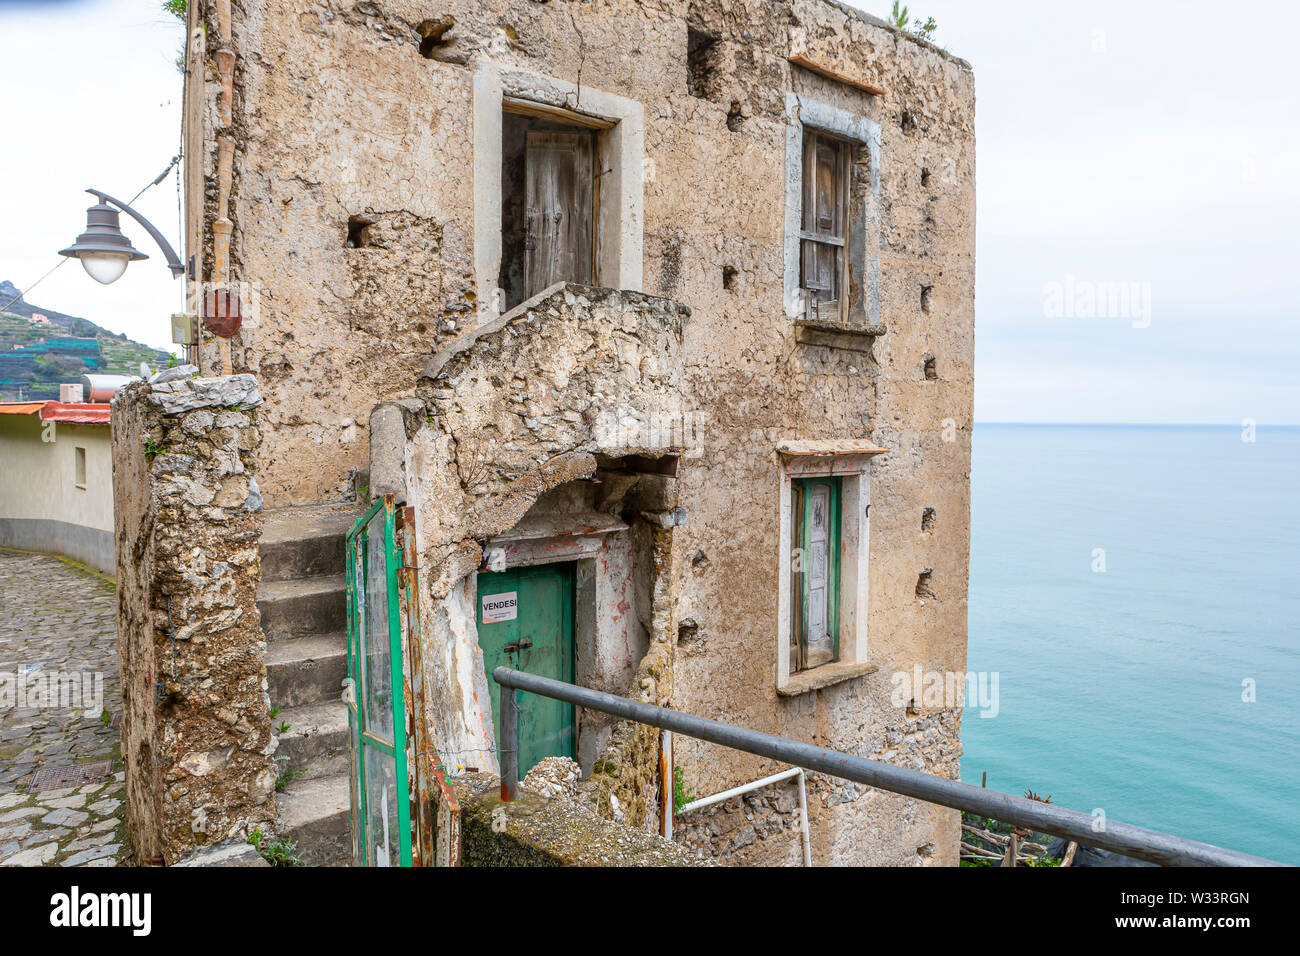 abandoned, destroyed house with sea view in Amalfi, Italy Stock Photo